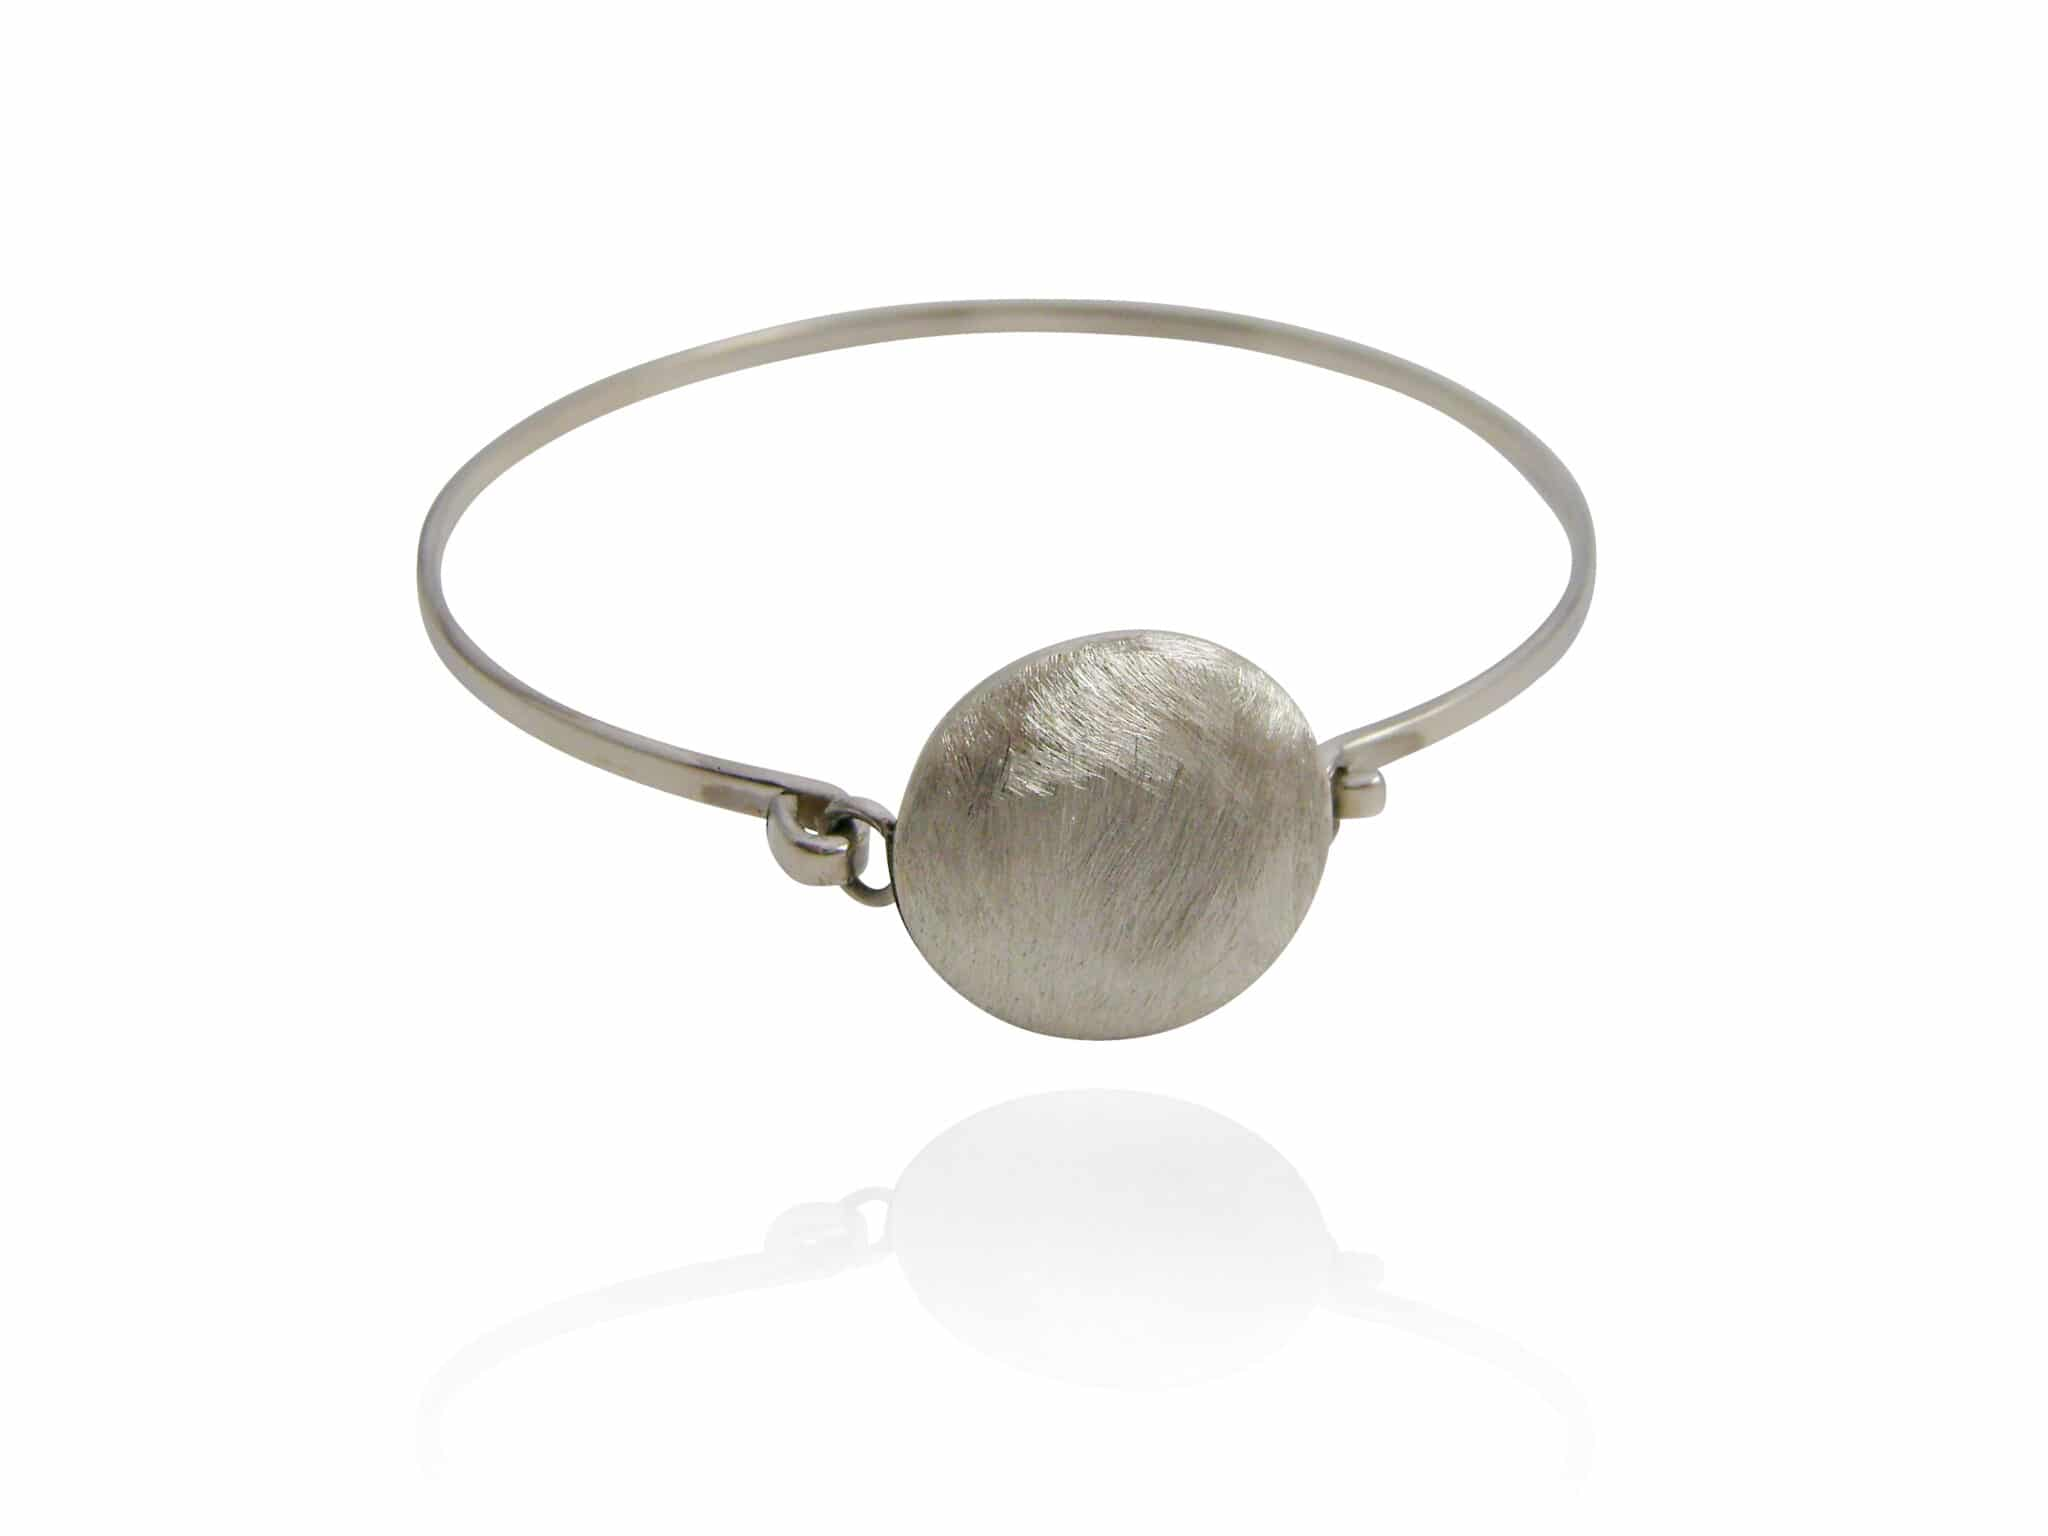 UNISEX Satin Finish Circle Cuff Bangle.  By Sterling Silver 925